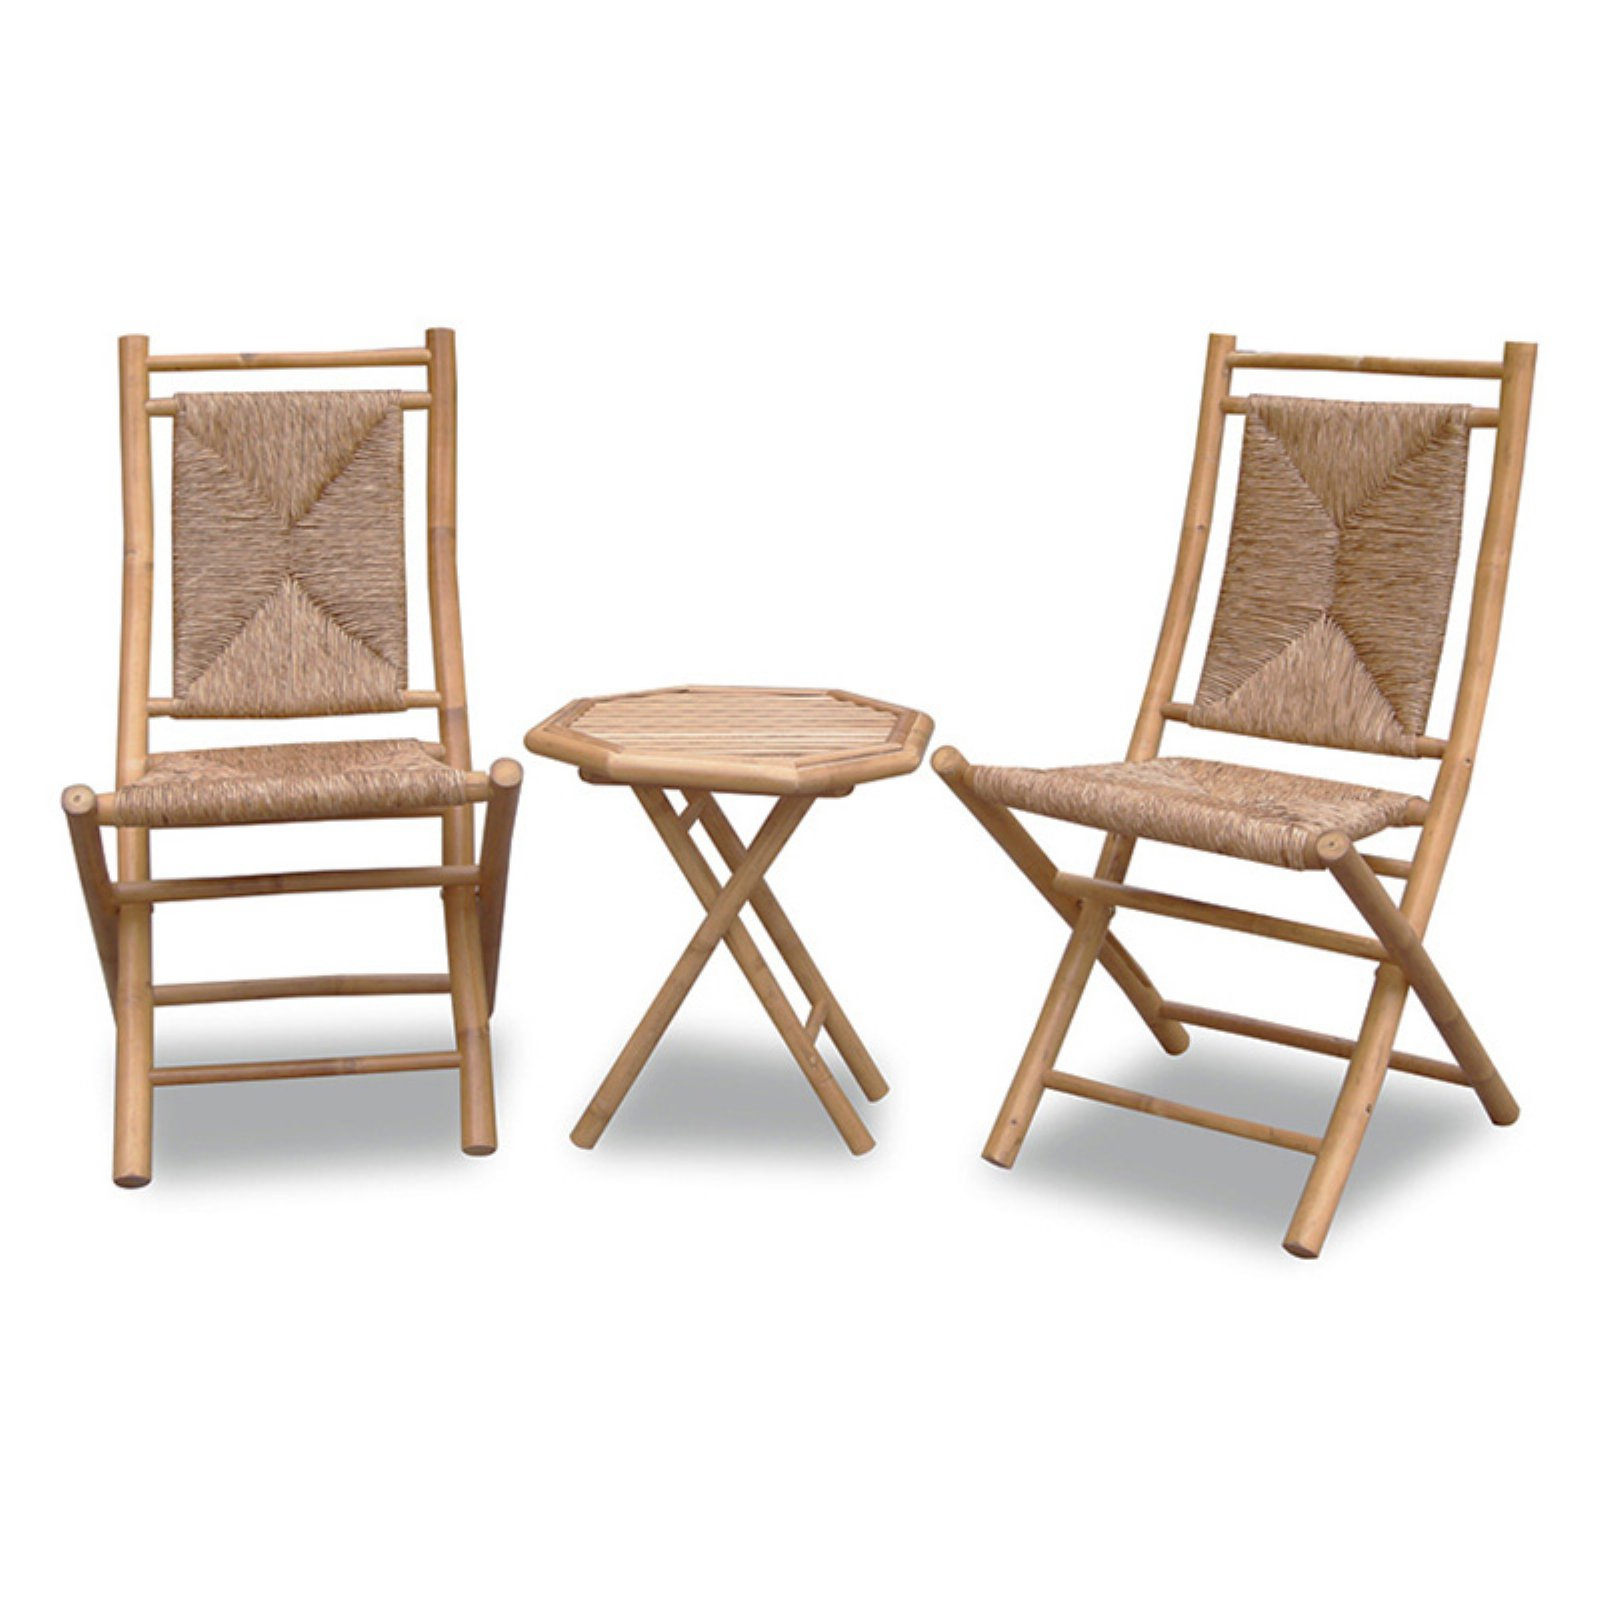 Heather Ann Creations Lanai 3 Piece Bamboo Patio Conversation Set